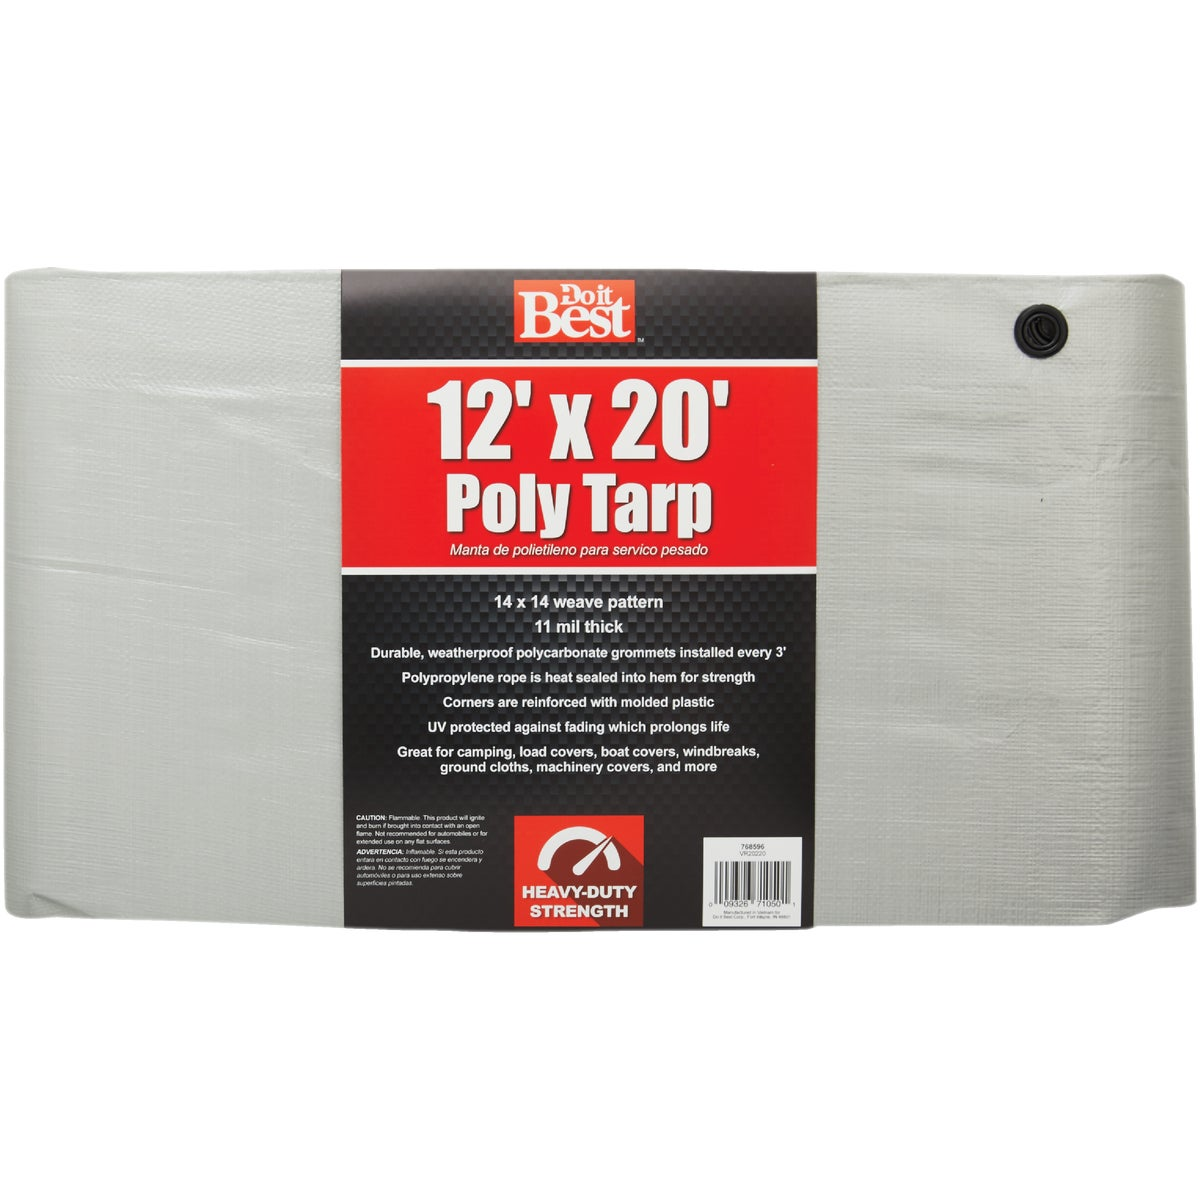 12X20 SLVR H/DUTY TARP - 768596 by Do it Best